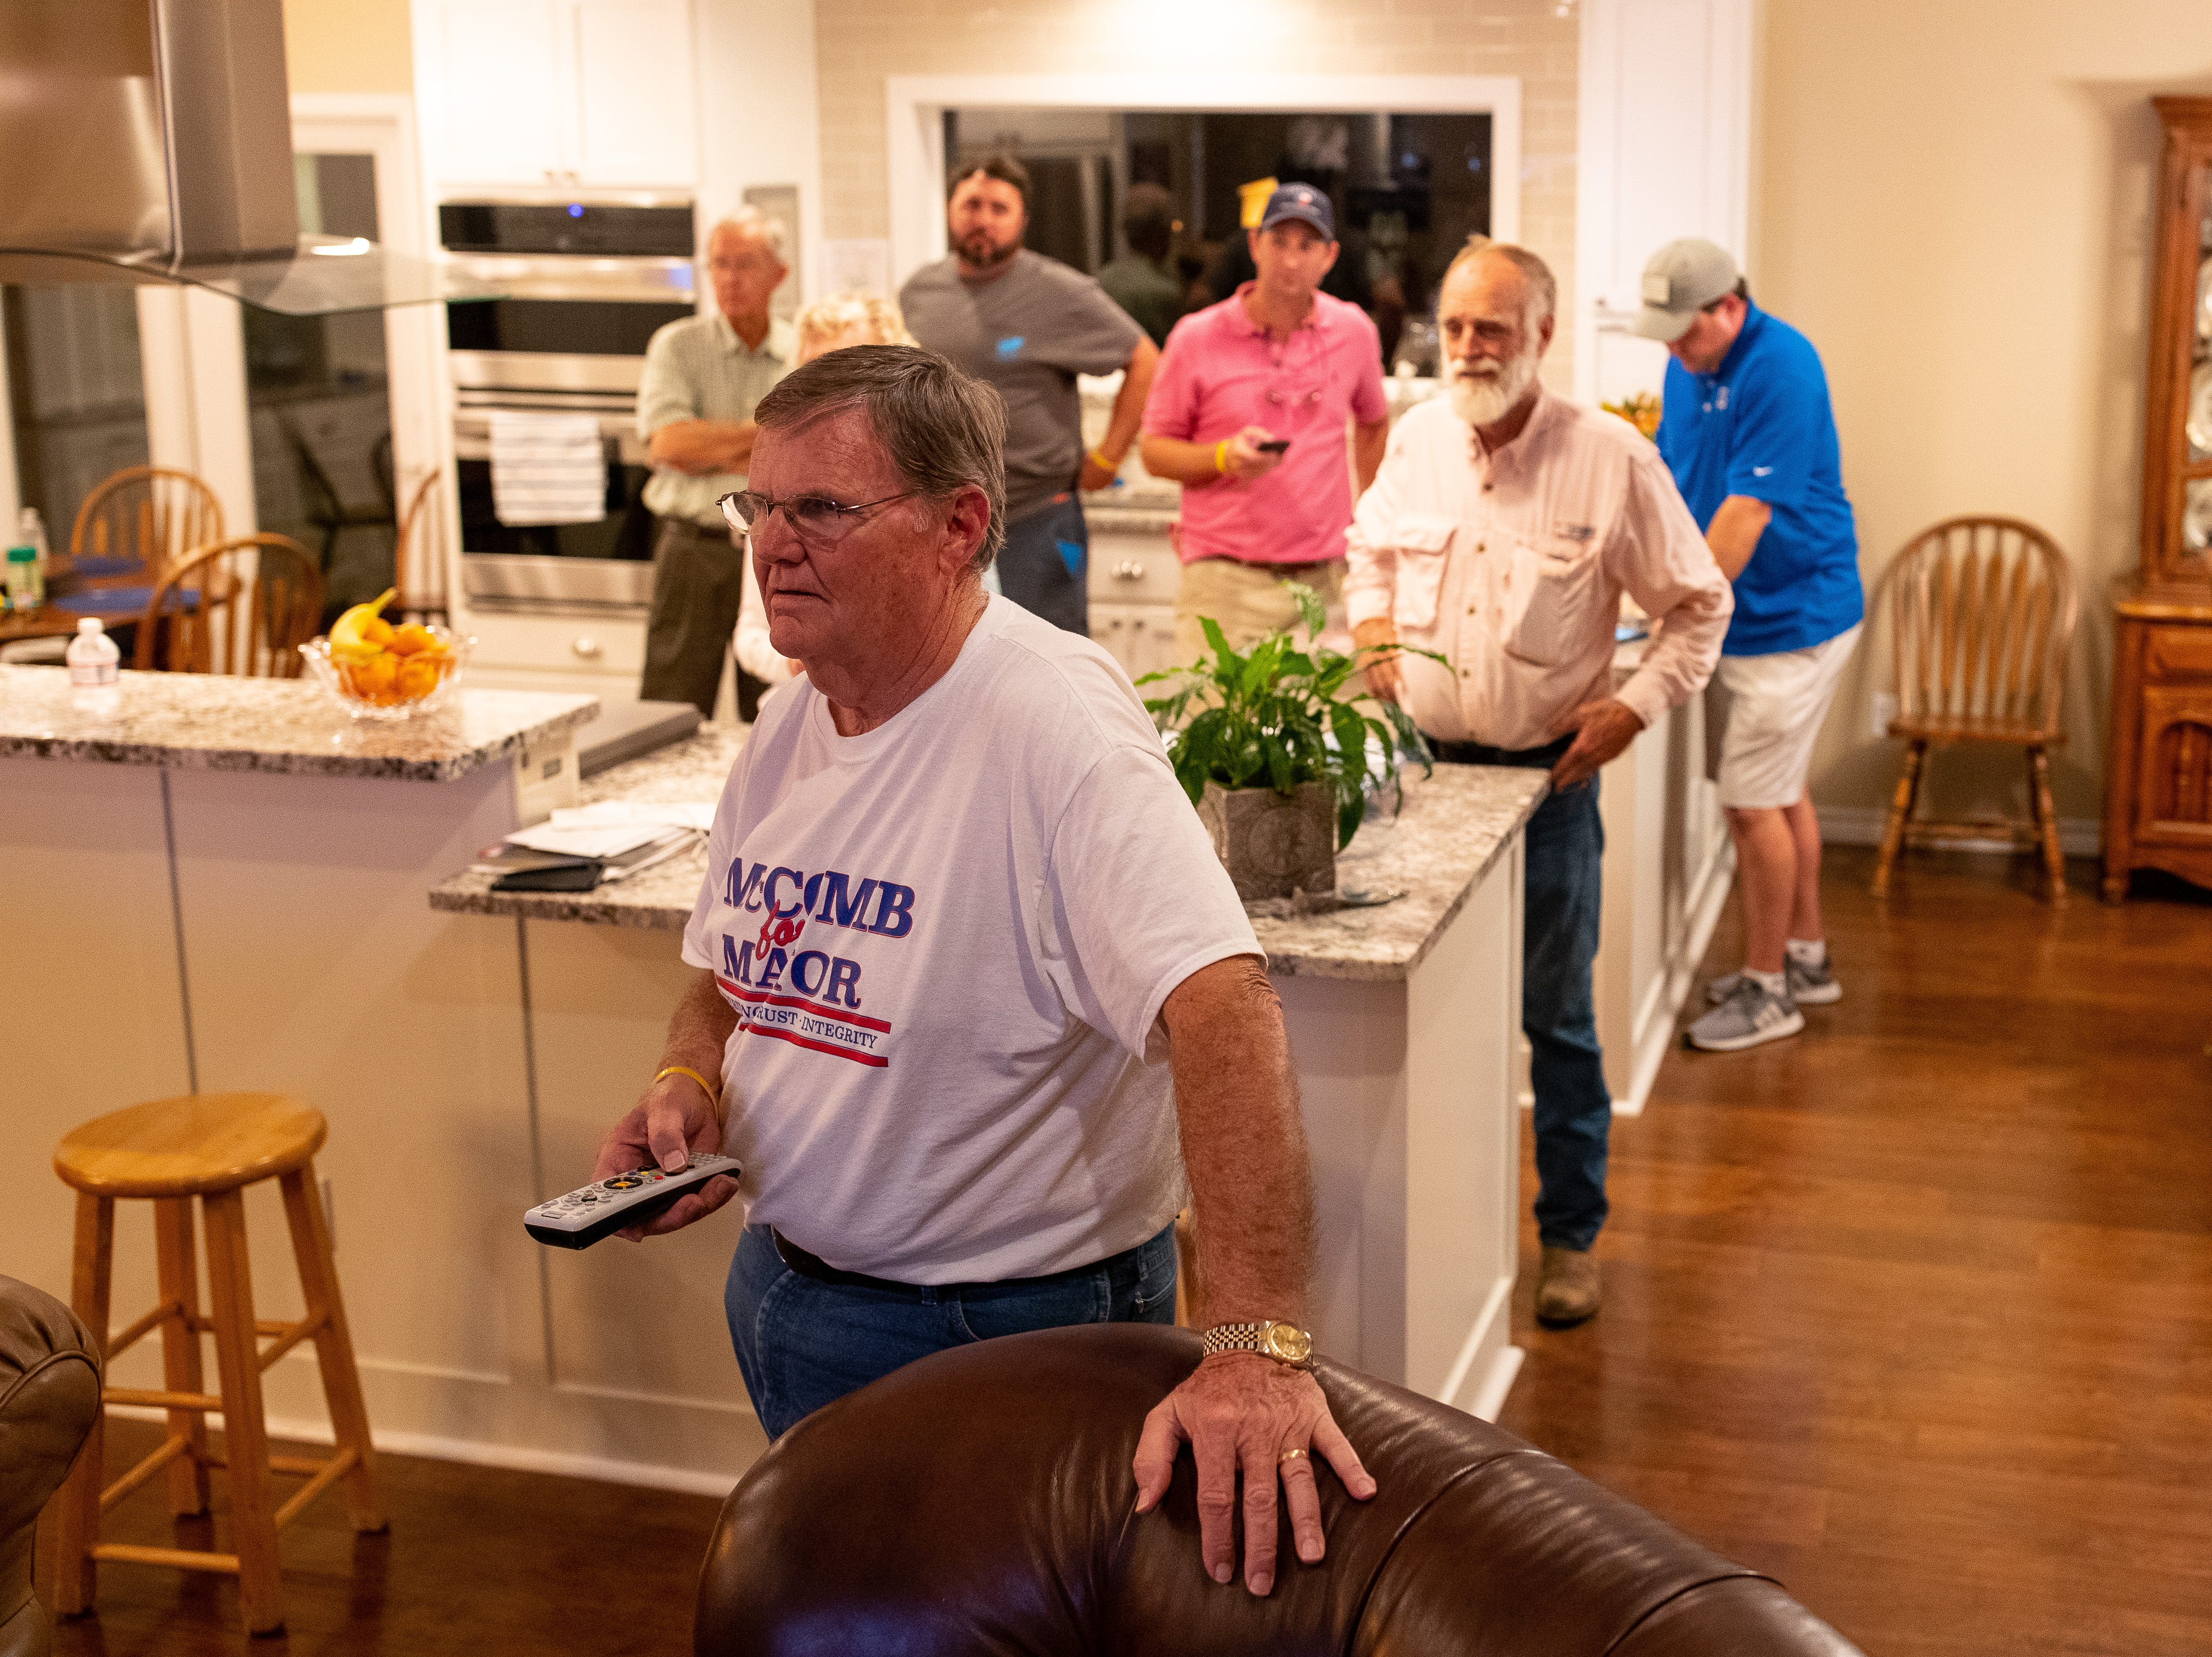 Corpus Christi mayor Joe McComb seeking re-election watches the TV as his lead drops to less then 51% as polling numbers come in on Tuesday, Nov. 6, 2018.